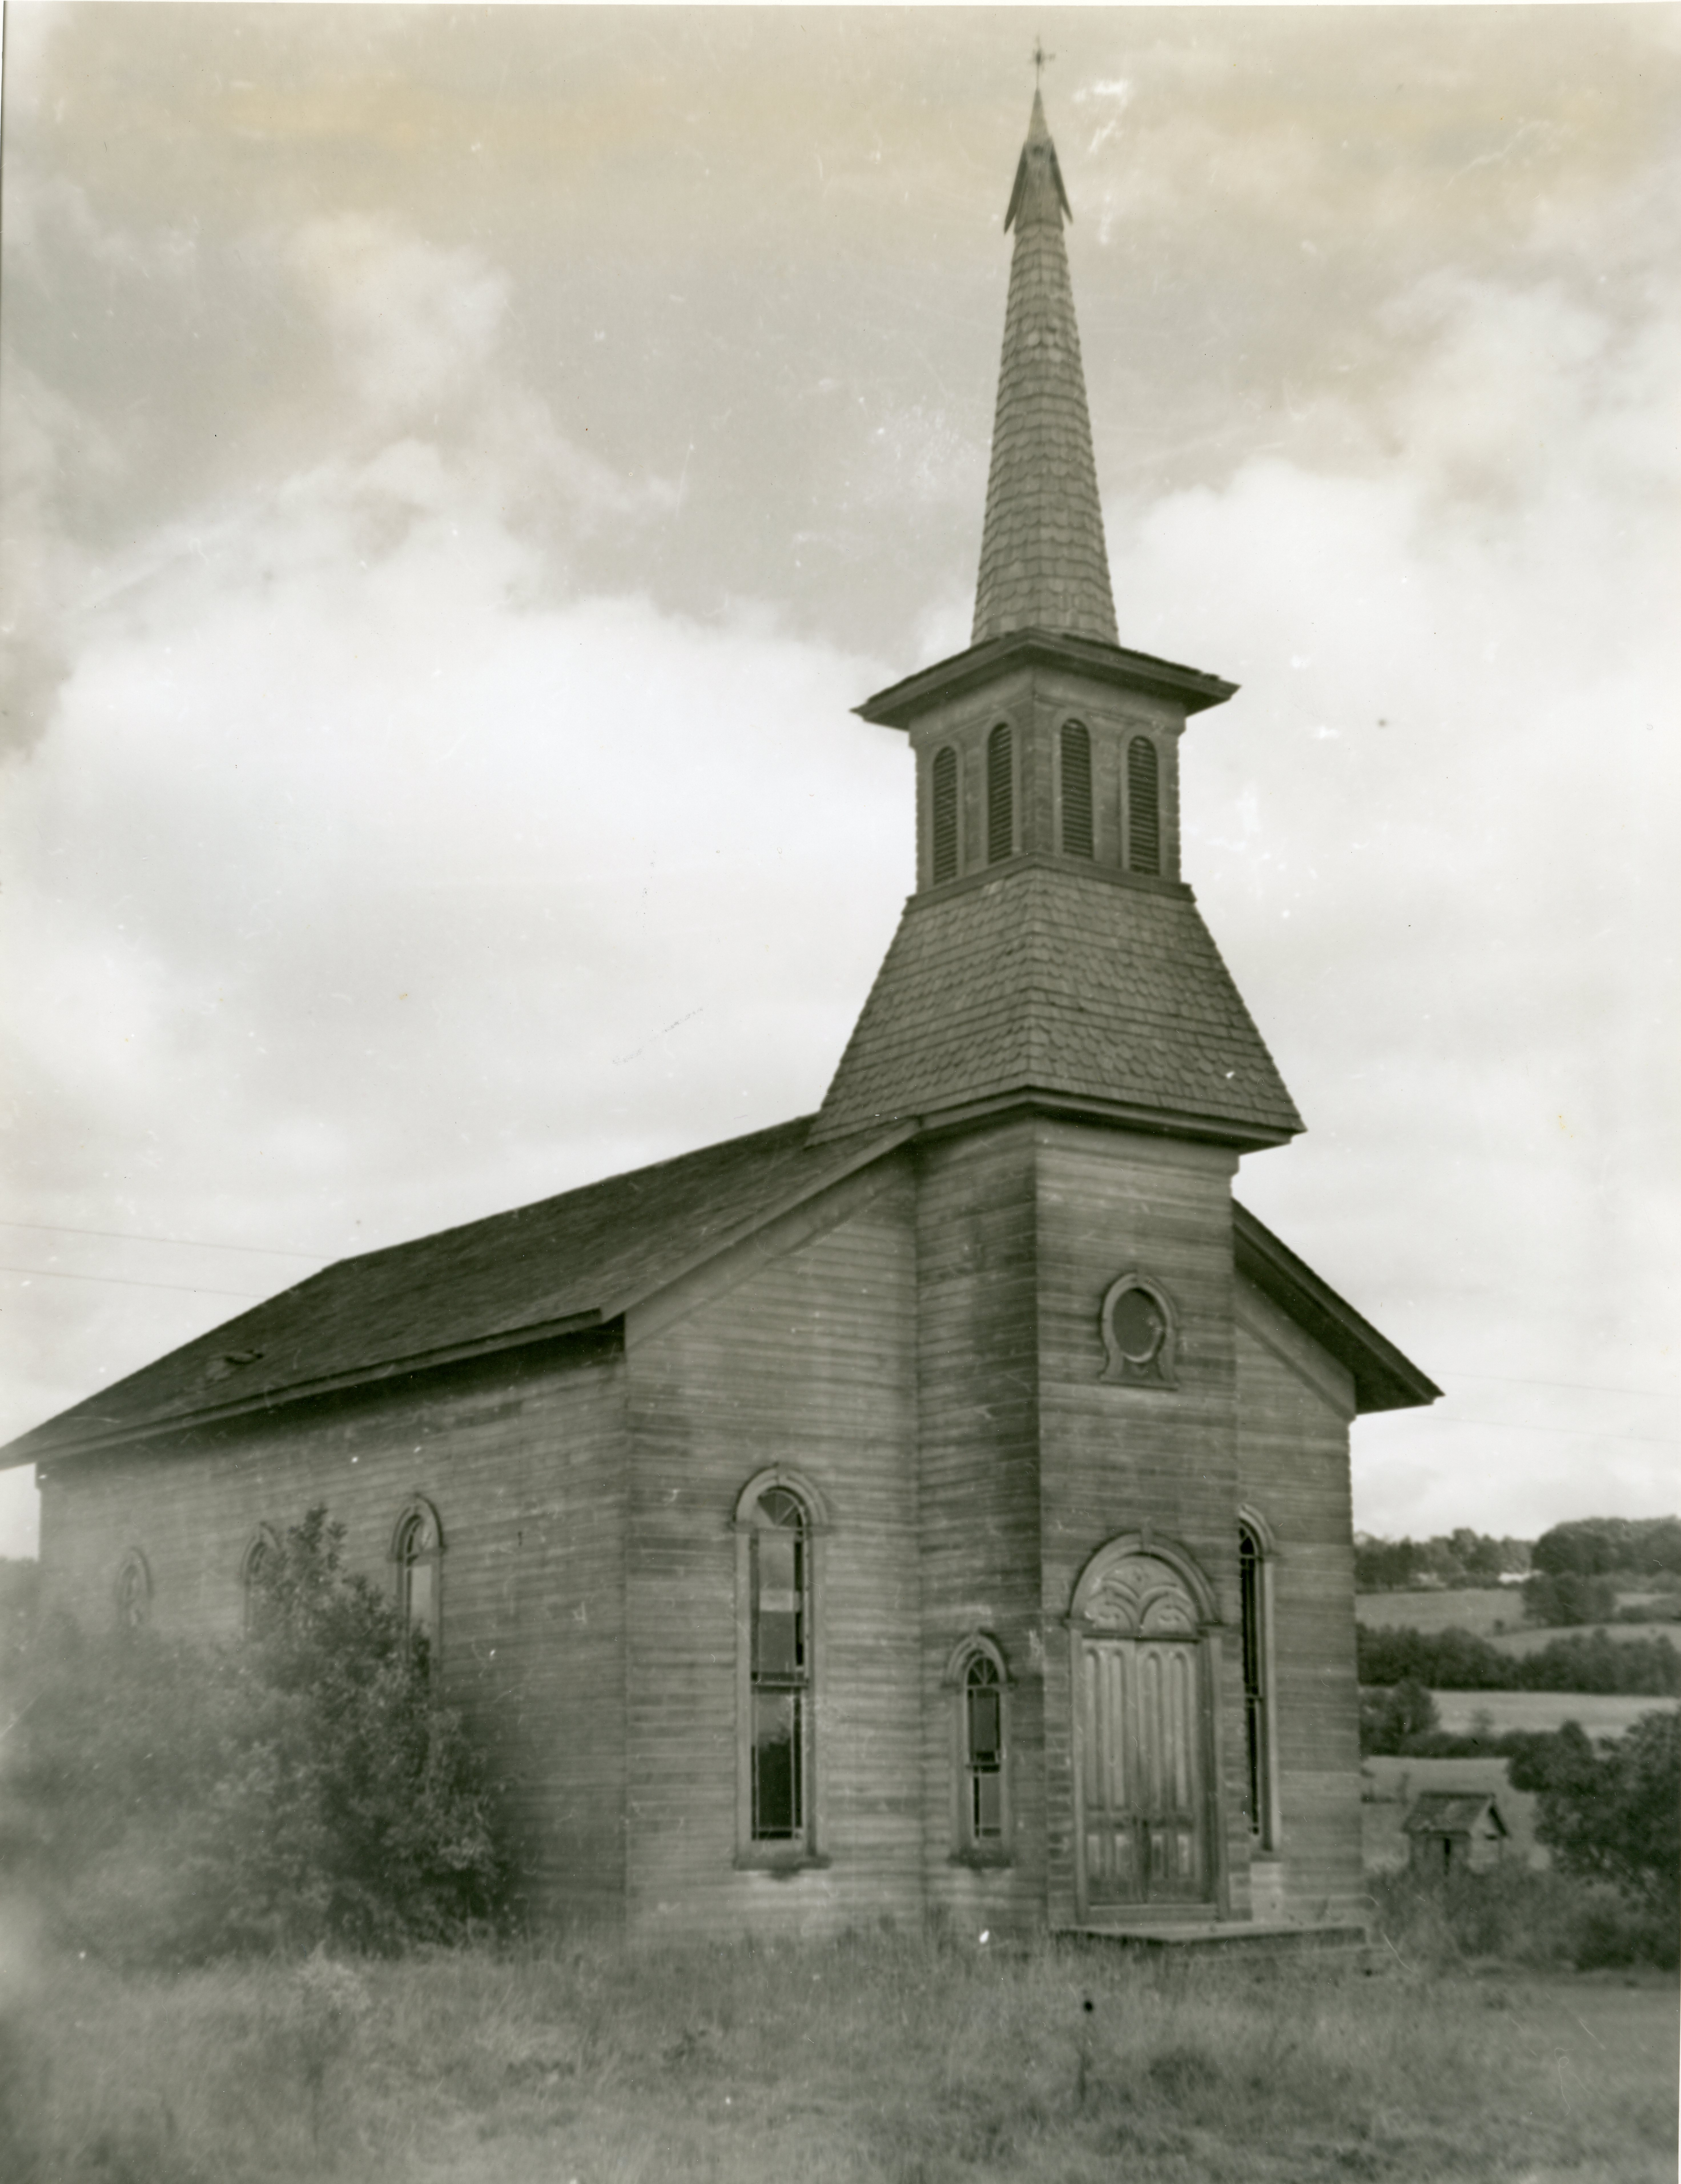 Image of old wooden Methodist Church in Barkertown.